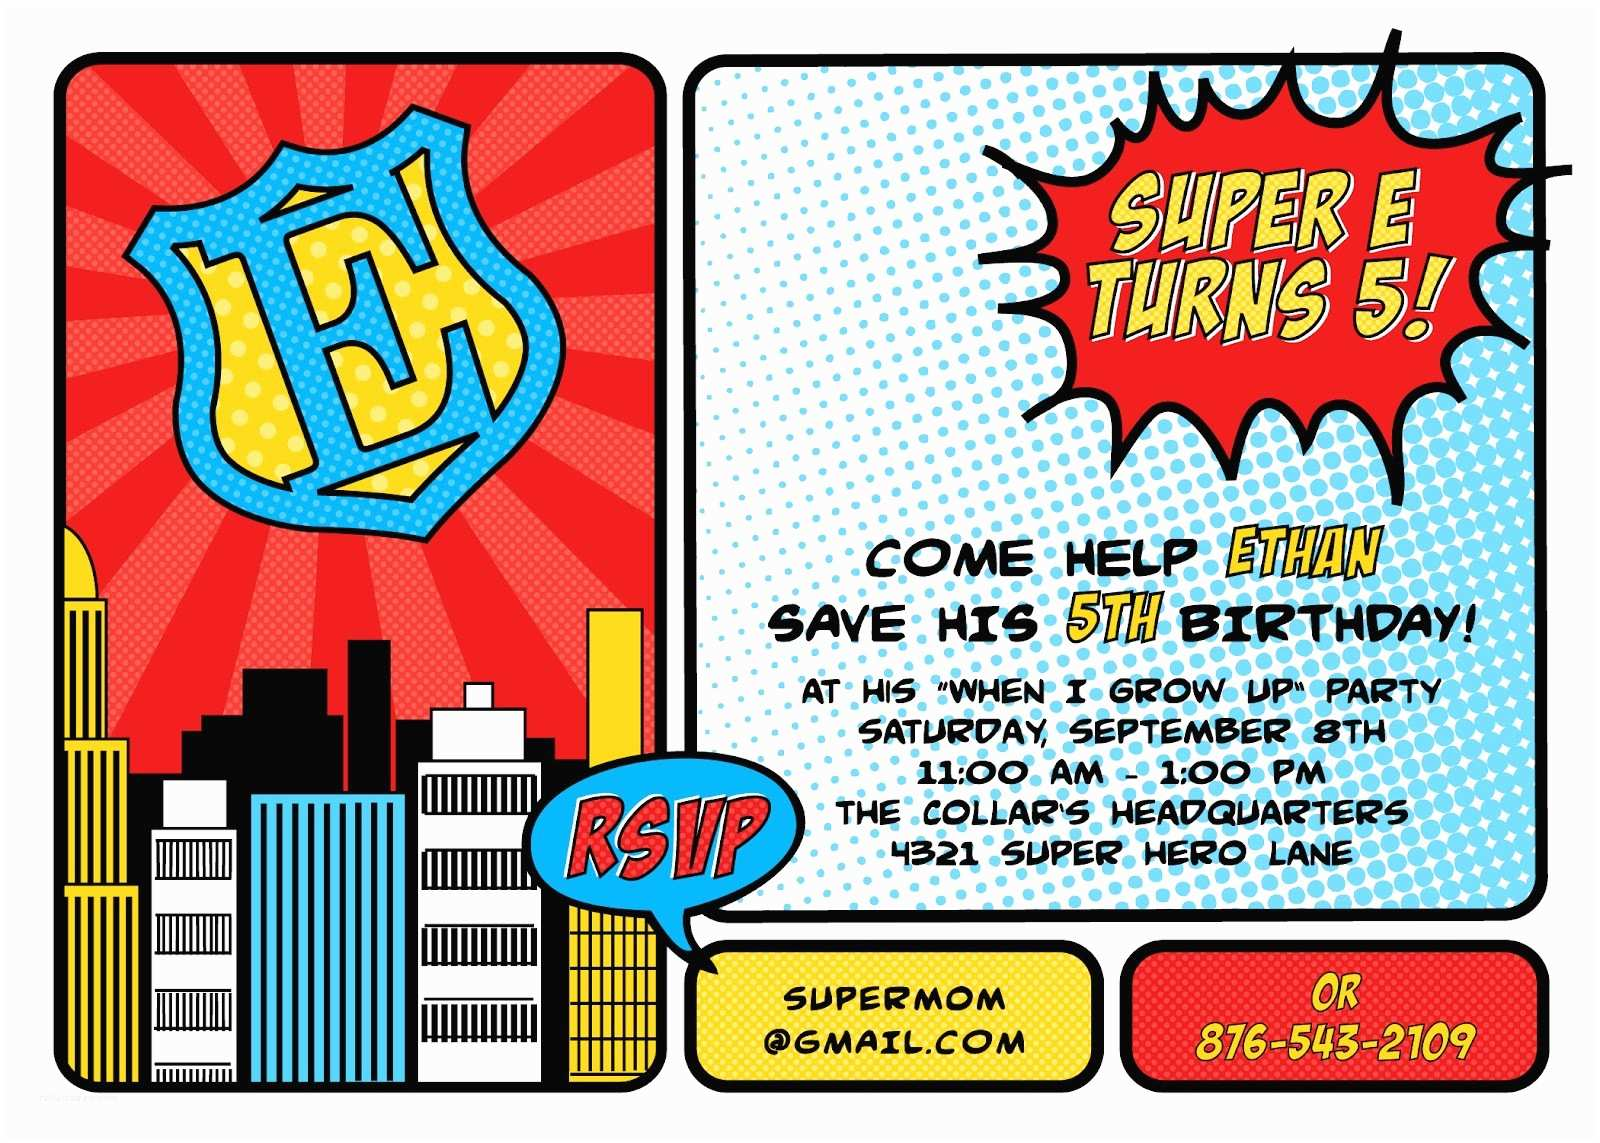 Superhero Party Invitations Buckets Of Grace Ethan S 5th Birthday Party Prep and